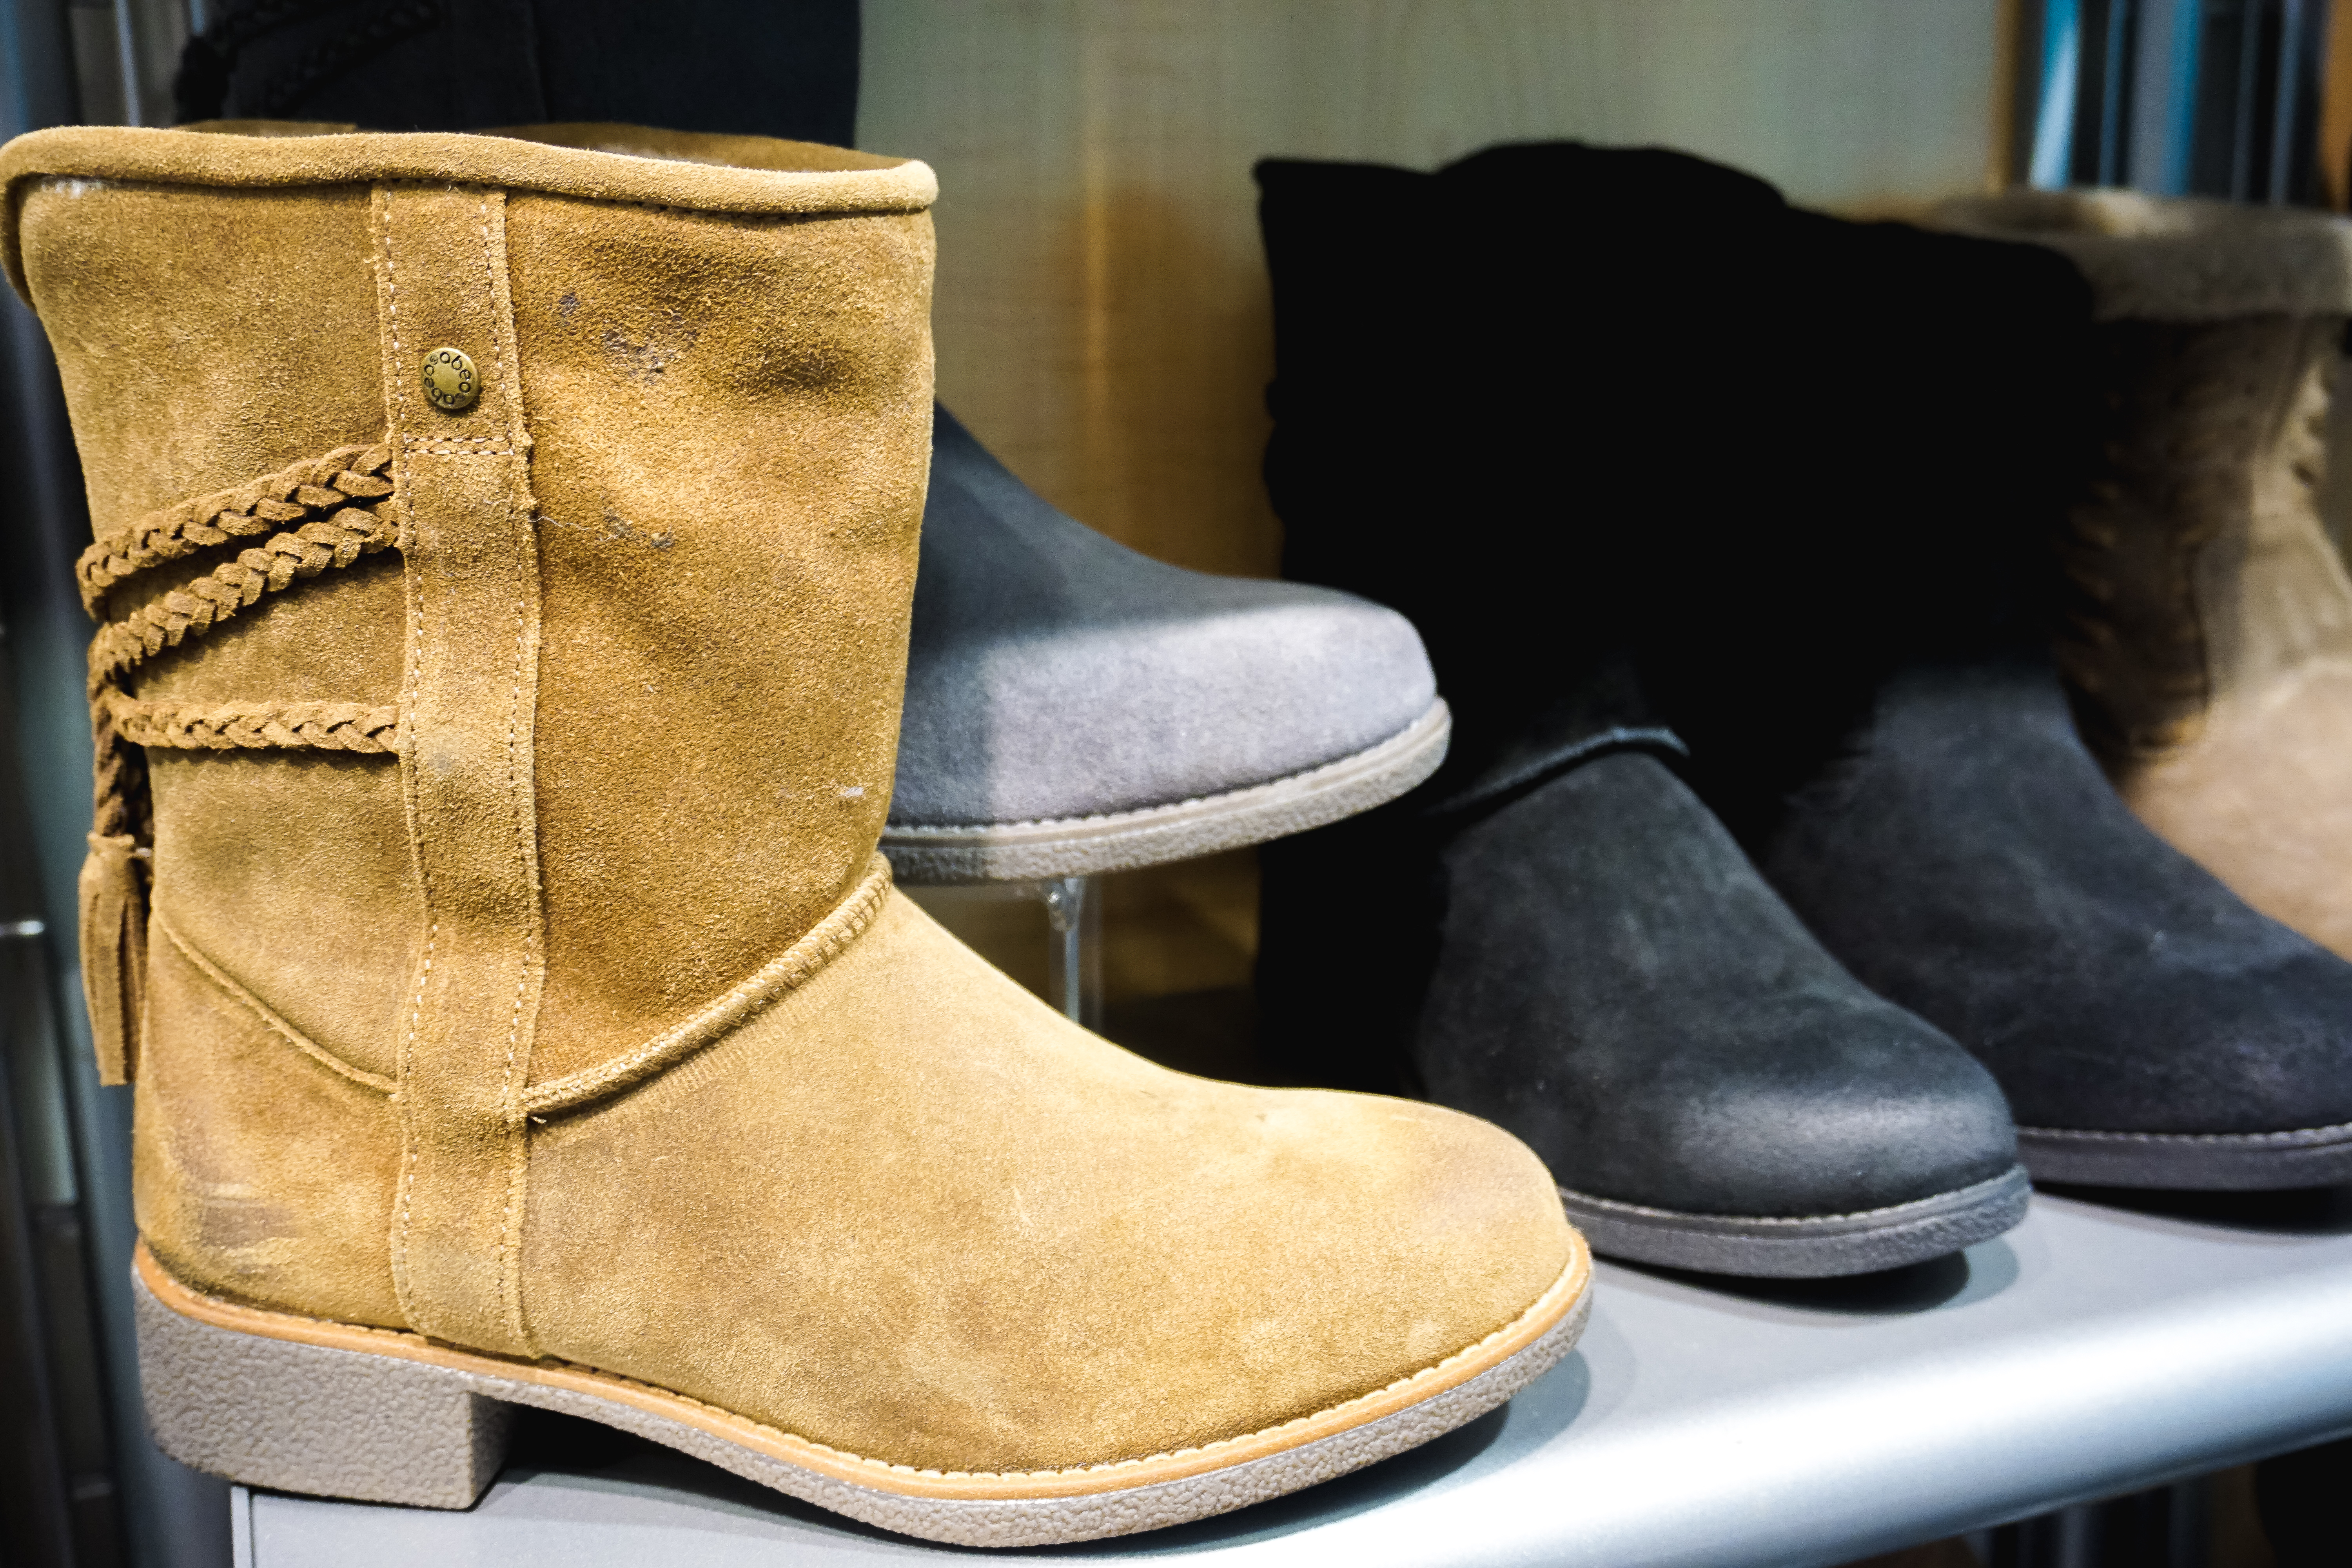 CUSTOM FOOTWEAR THAT'S COMFORTABLE AND STYLISH